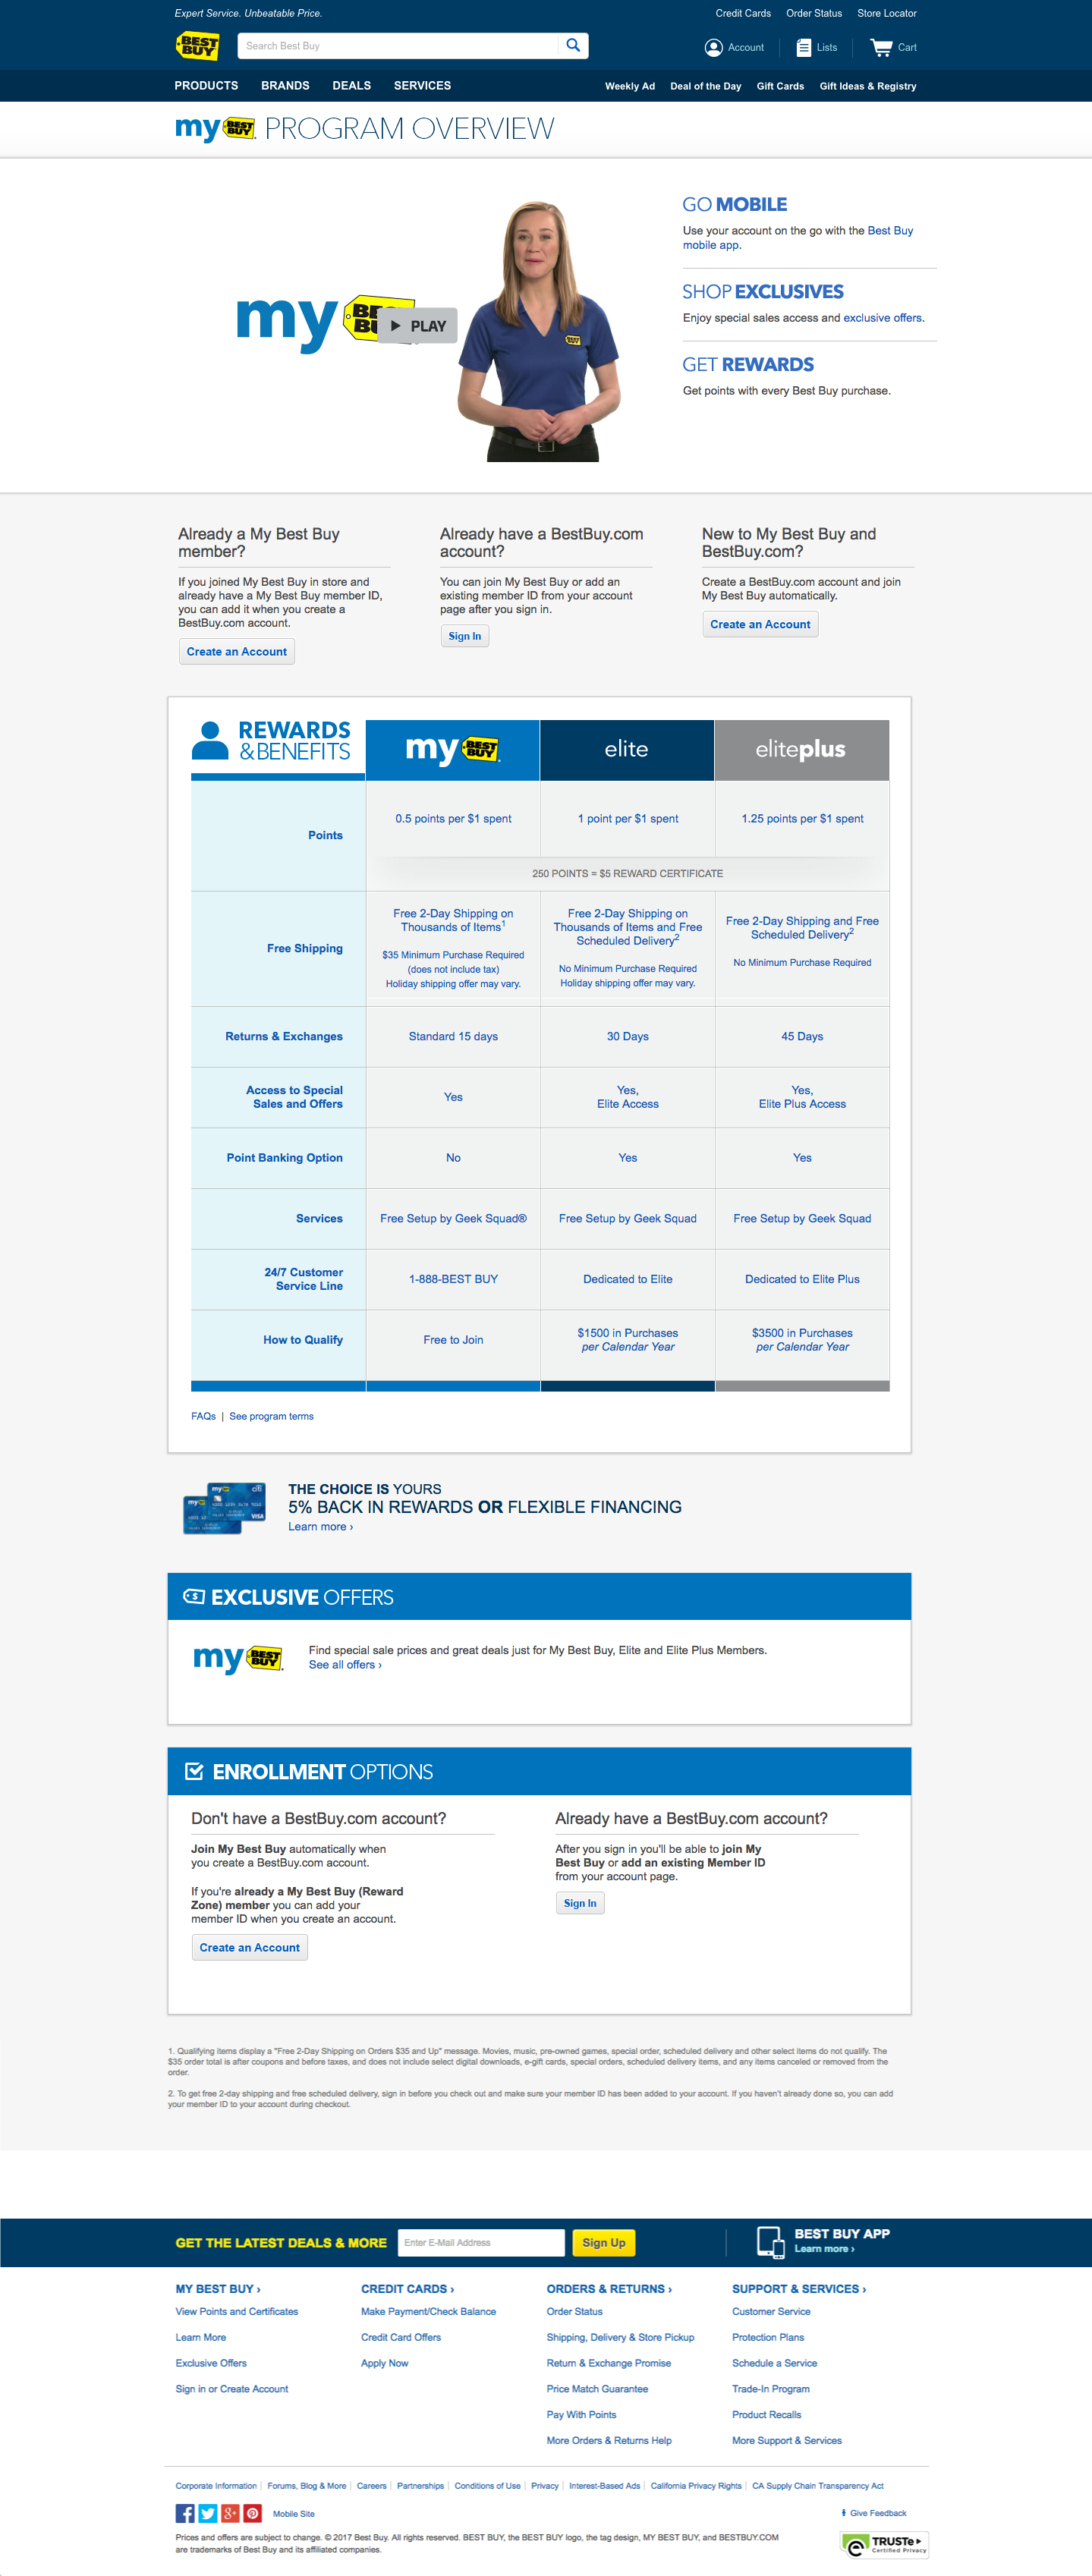 Best buy combines video and clean tables to communicate the more rewards and exclusive offers with the my best buy program check out the program overview and rewards benefits for more information 1betcityfo Images